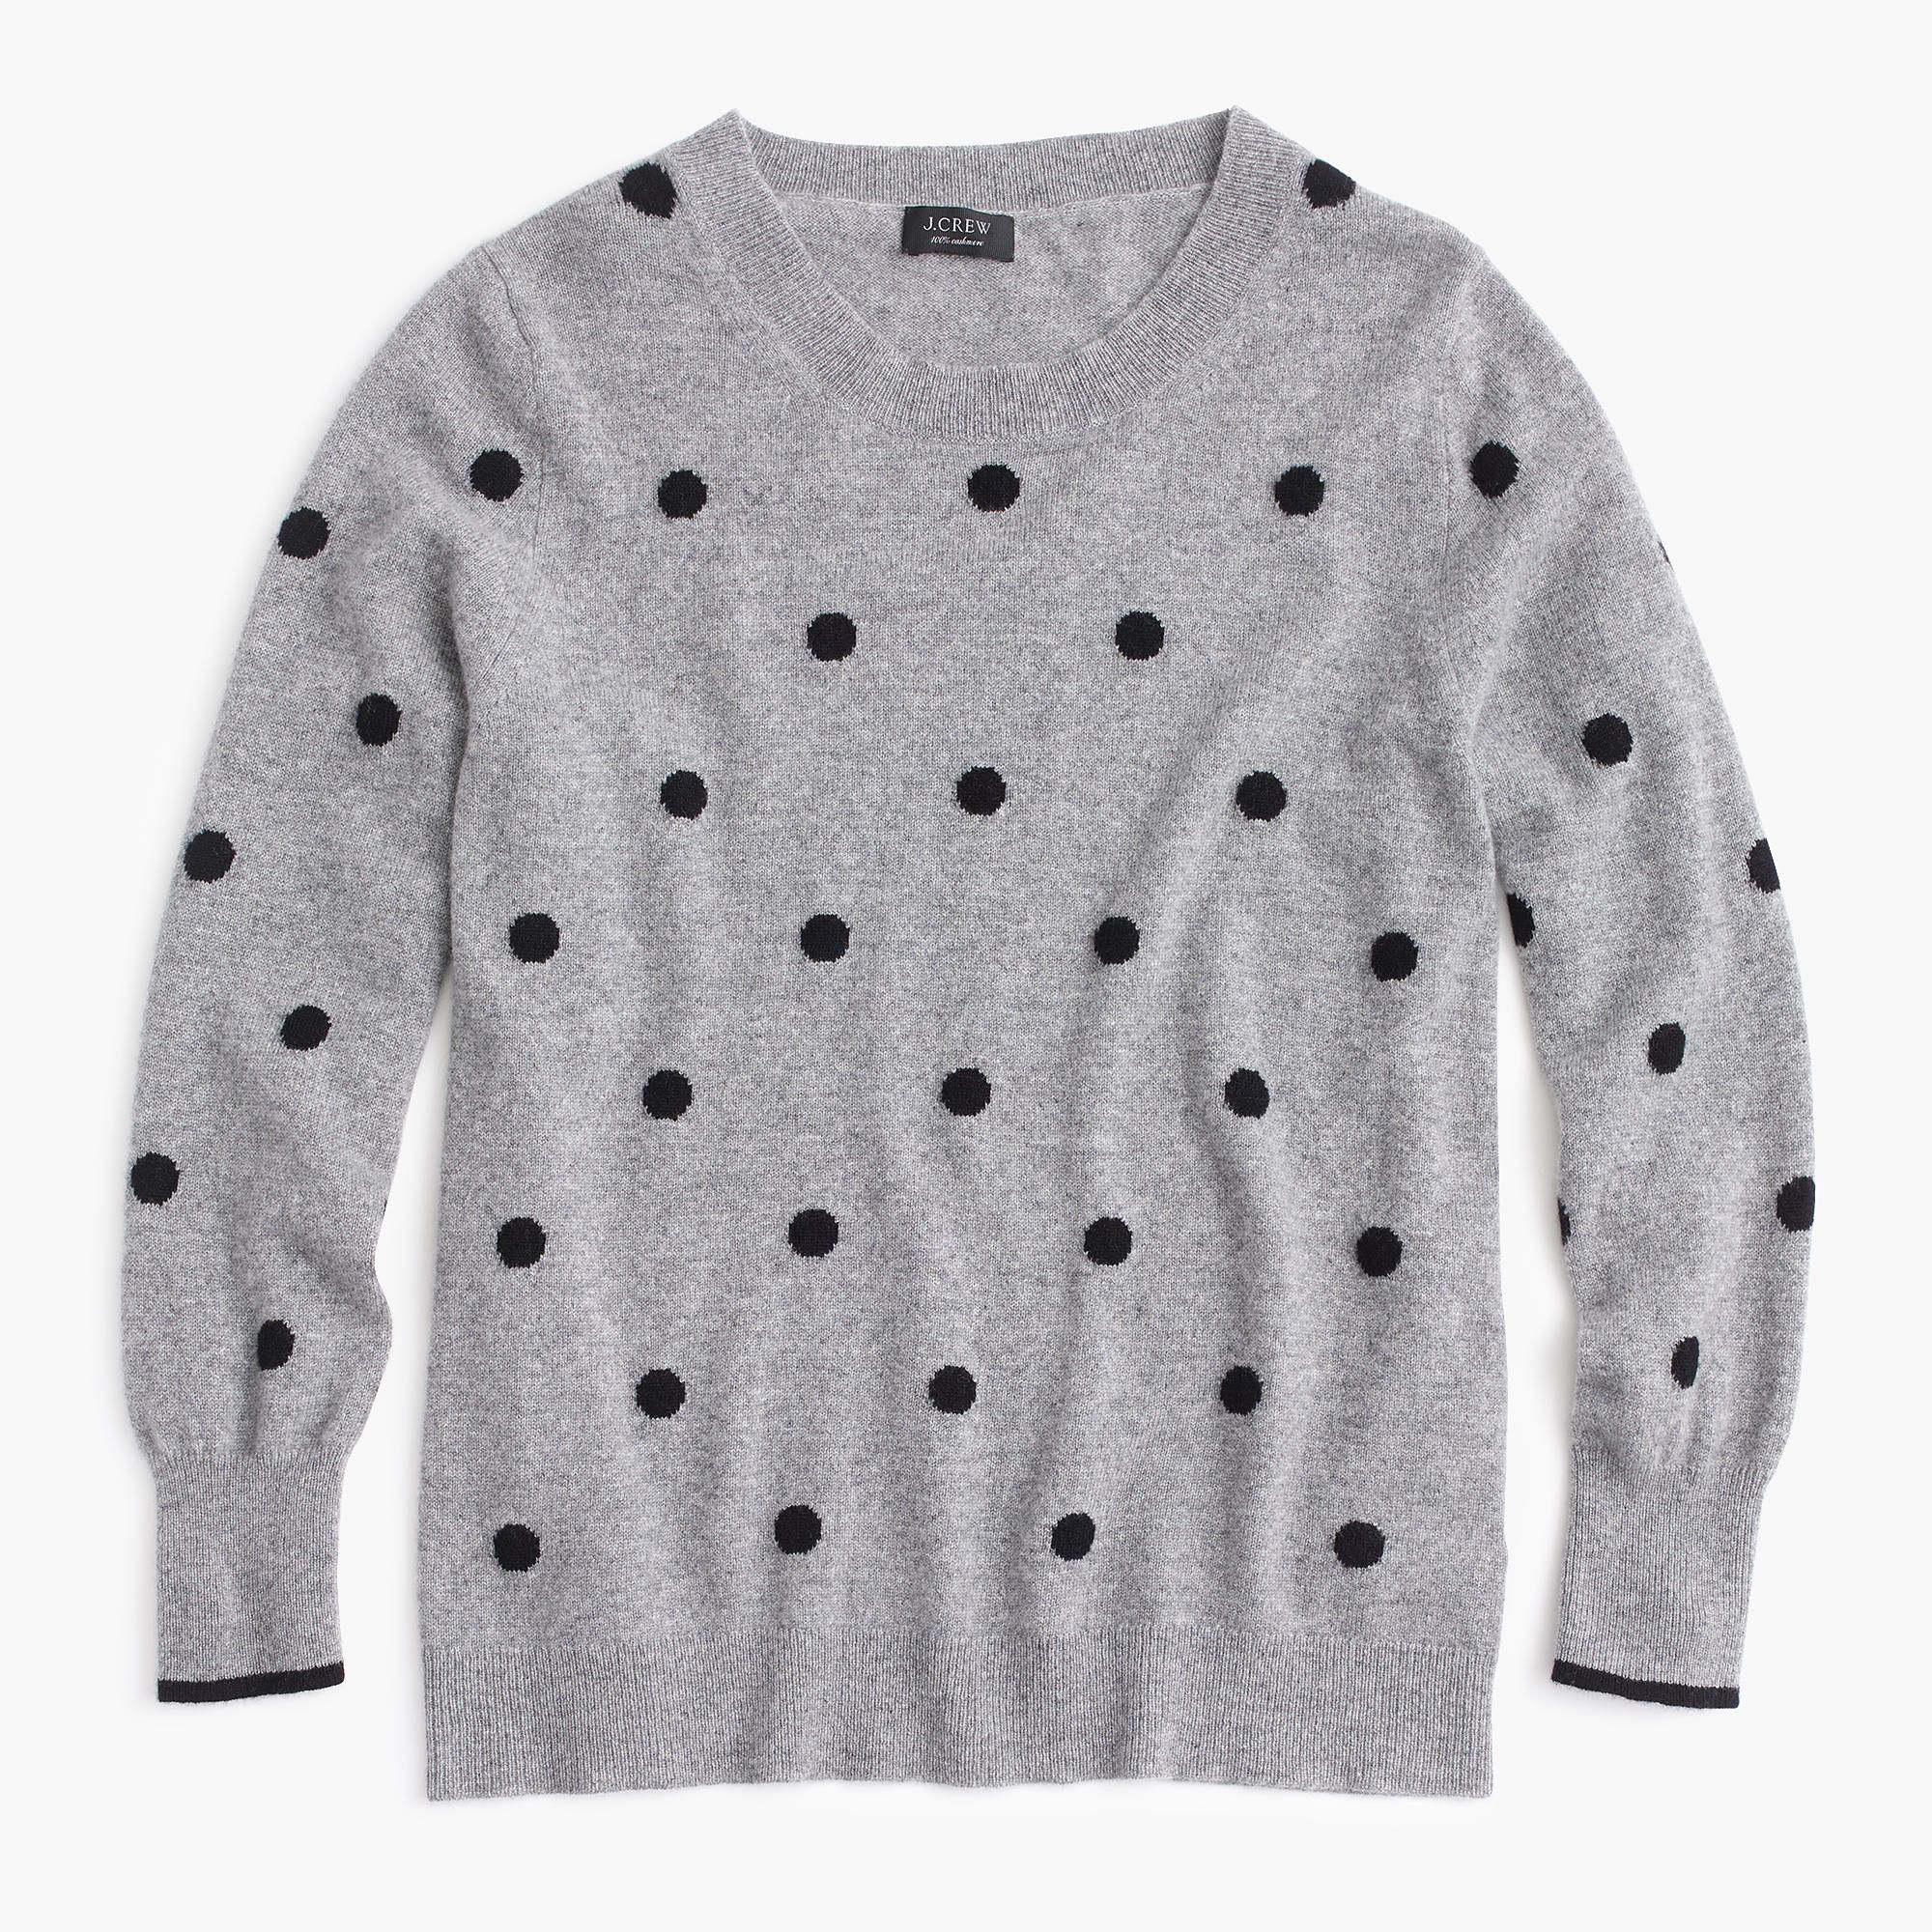 This new (100 percent cashmere) sweater feels crazy soft, without ...